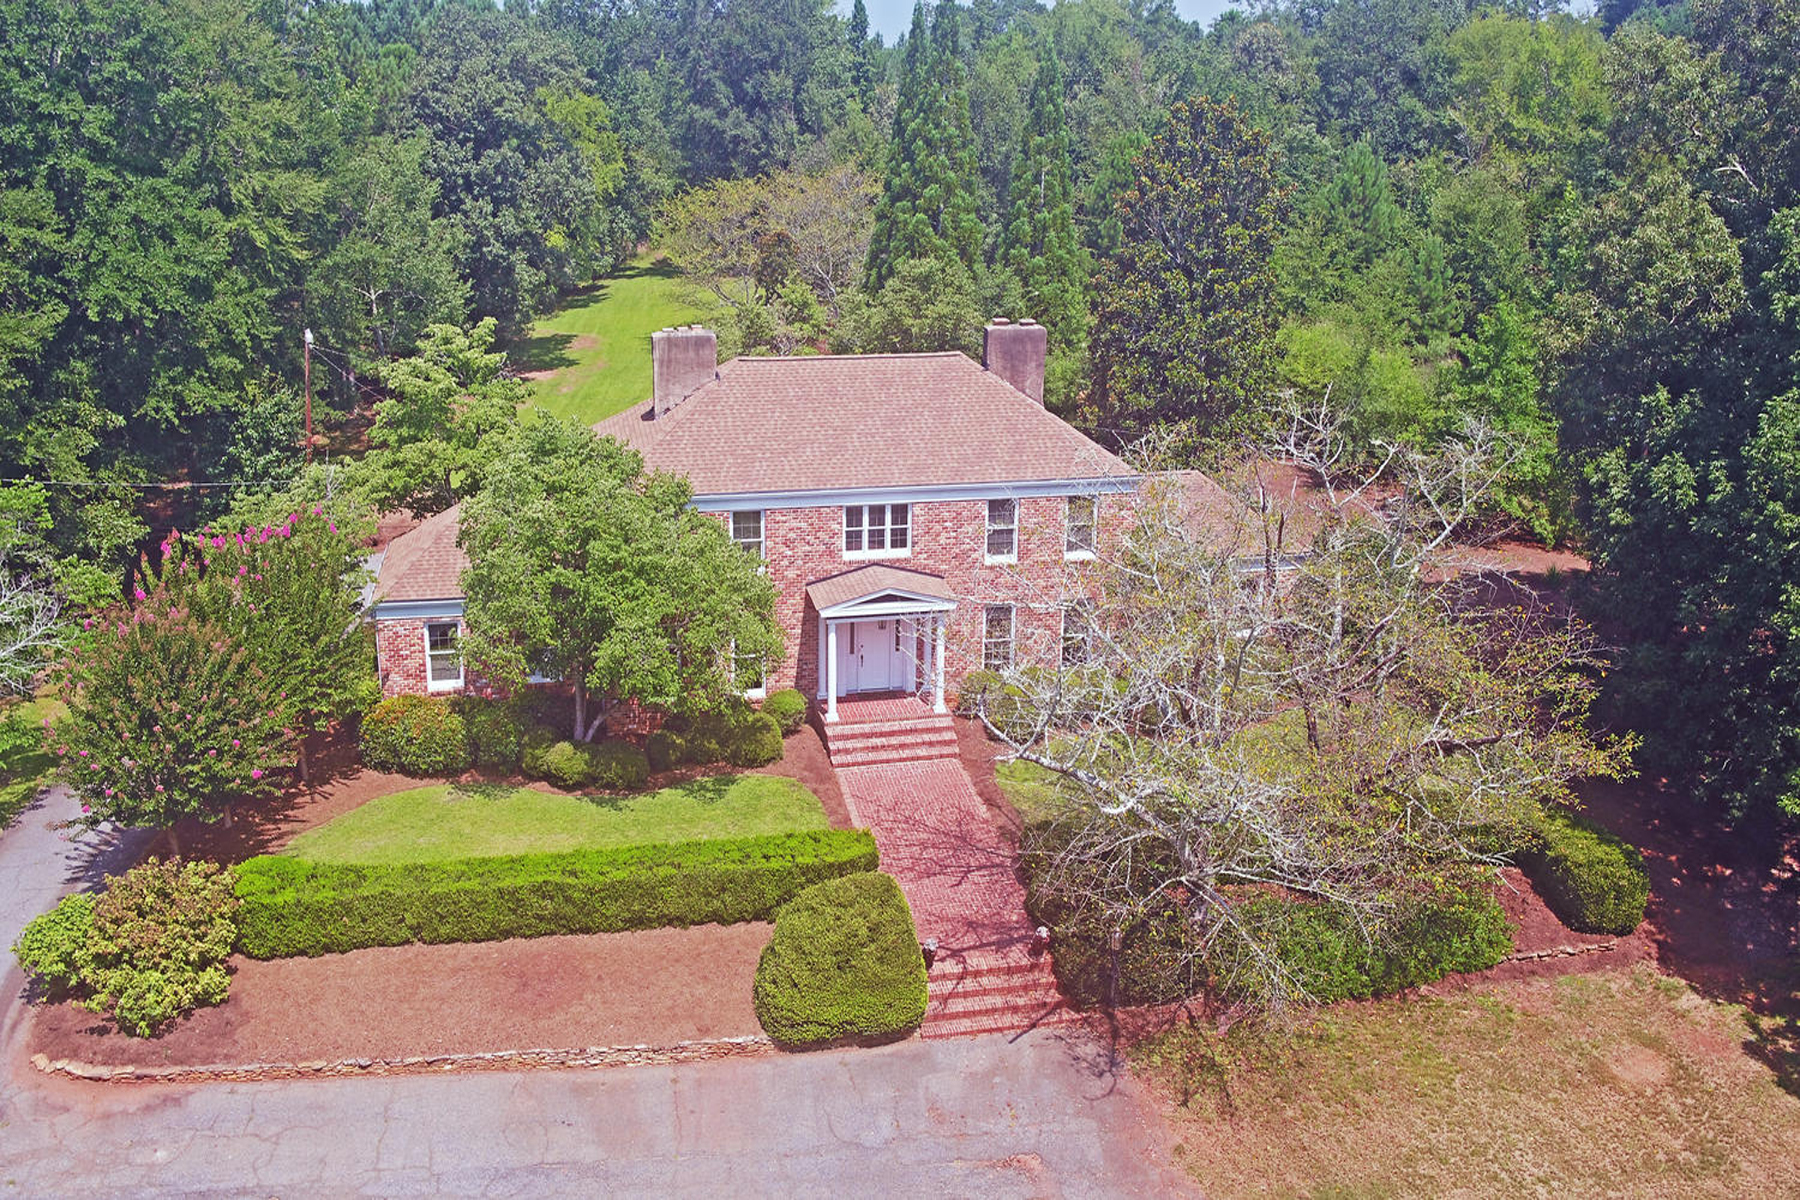 Single Family Home for Sale at Estate Home On 4+ Acres 140 Red Fox Run Athens, Georgia 30605 United States